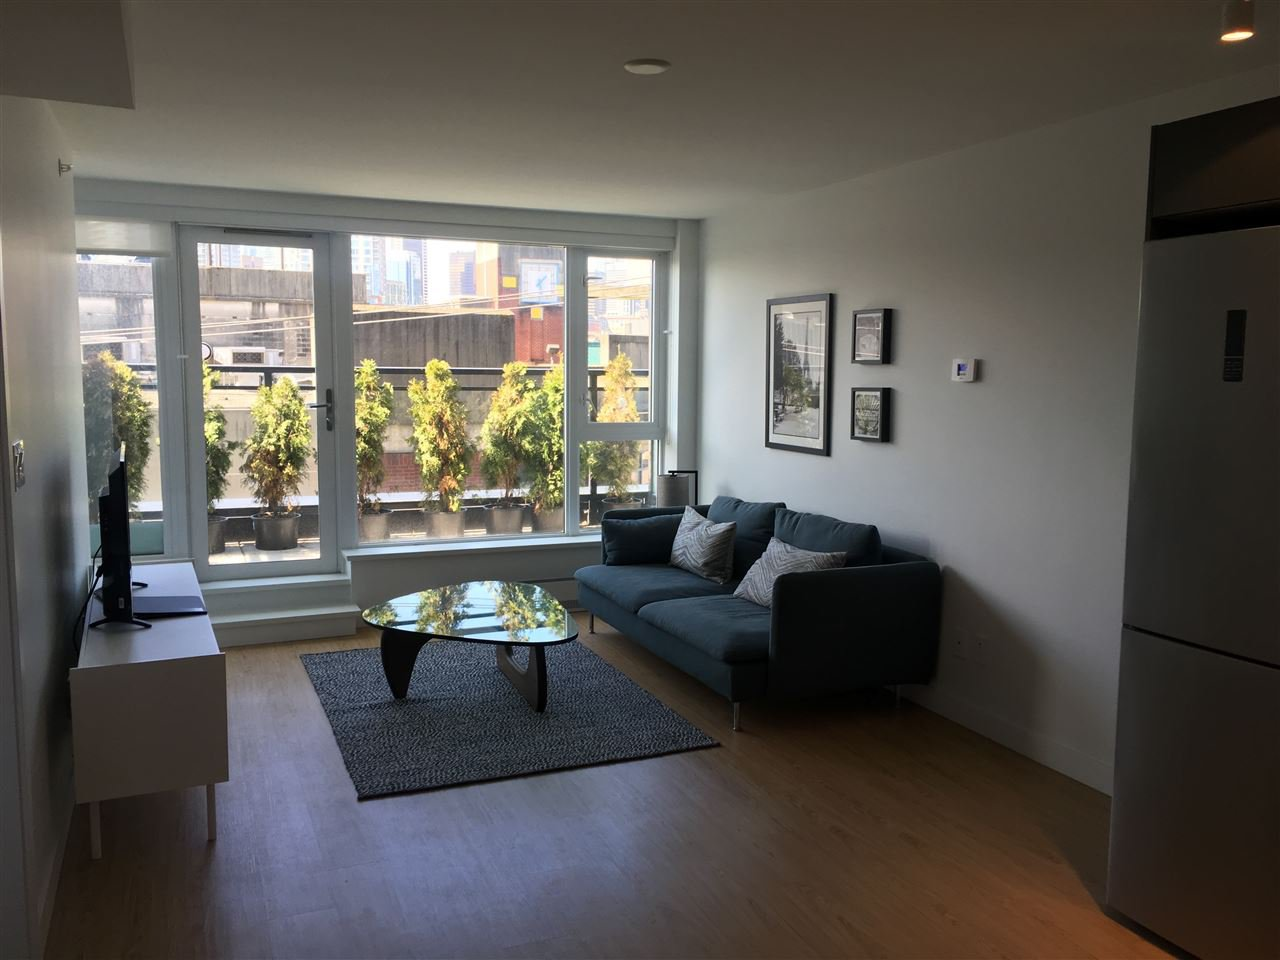 """Main Photo: 603 188 KEEFER Street in Vancouver: Downtown VW Condo for sale in """"188 Keefer"""" (Vancouver West)  : MLS®# R2151485"""